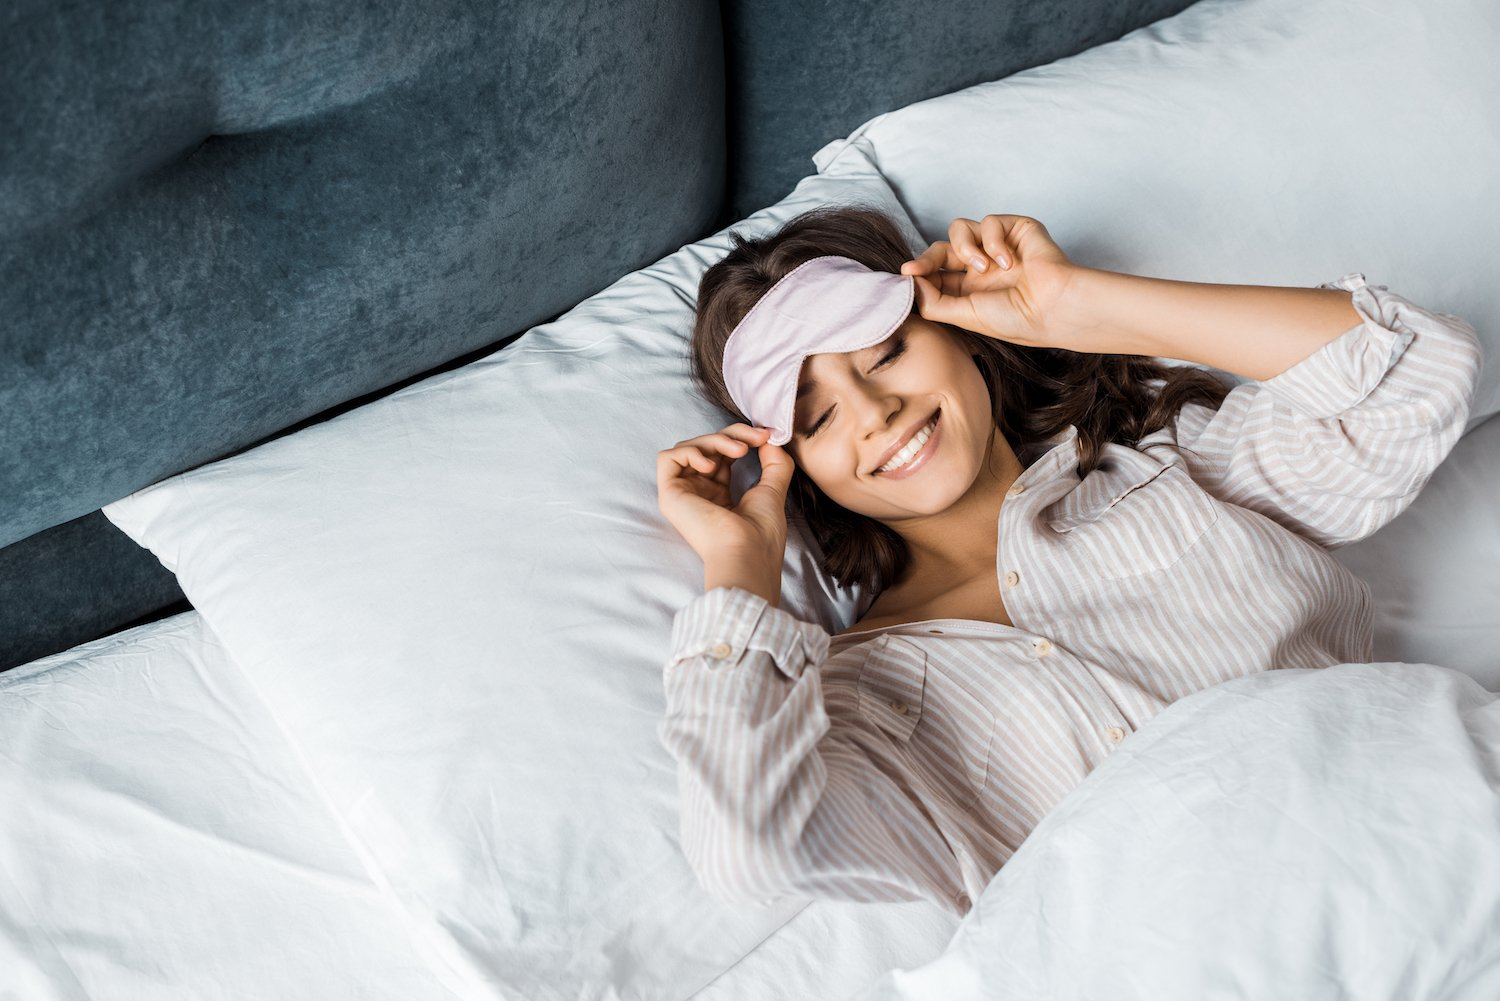 Woman waking up well rested after going to bed early